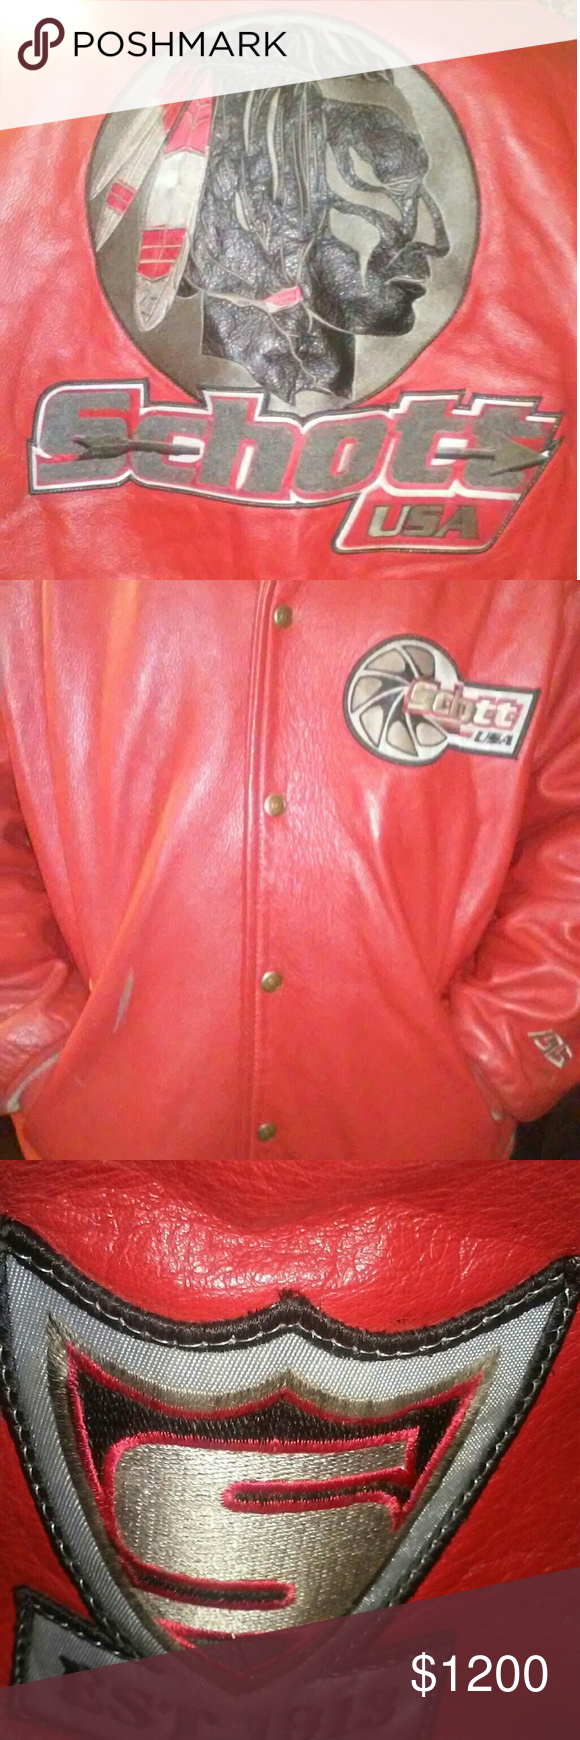 Vintage Schott Leather Jacket This Is 4x From 90 S Fantatic Condition Just Pulled From Storage No Rips Or Worn Out Le Leather Jacket Jackets Red Leather Jacket [ 1740 x 580 Pixel ]